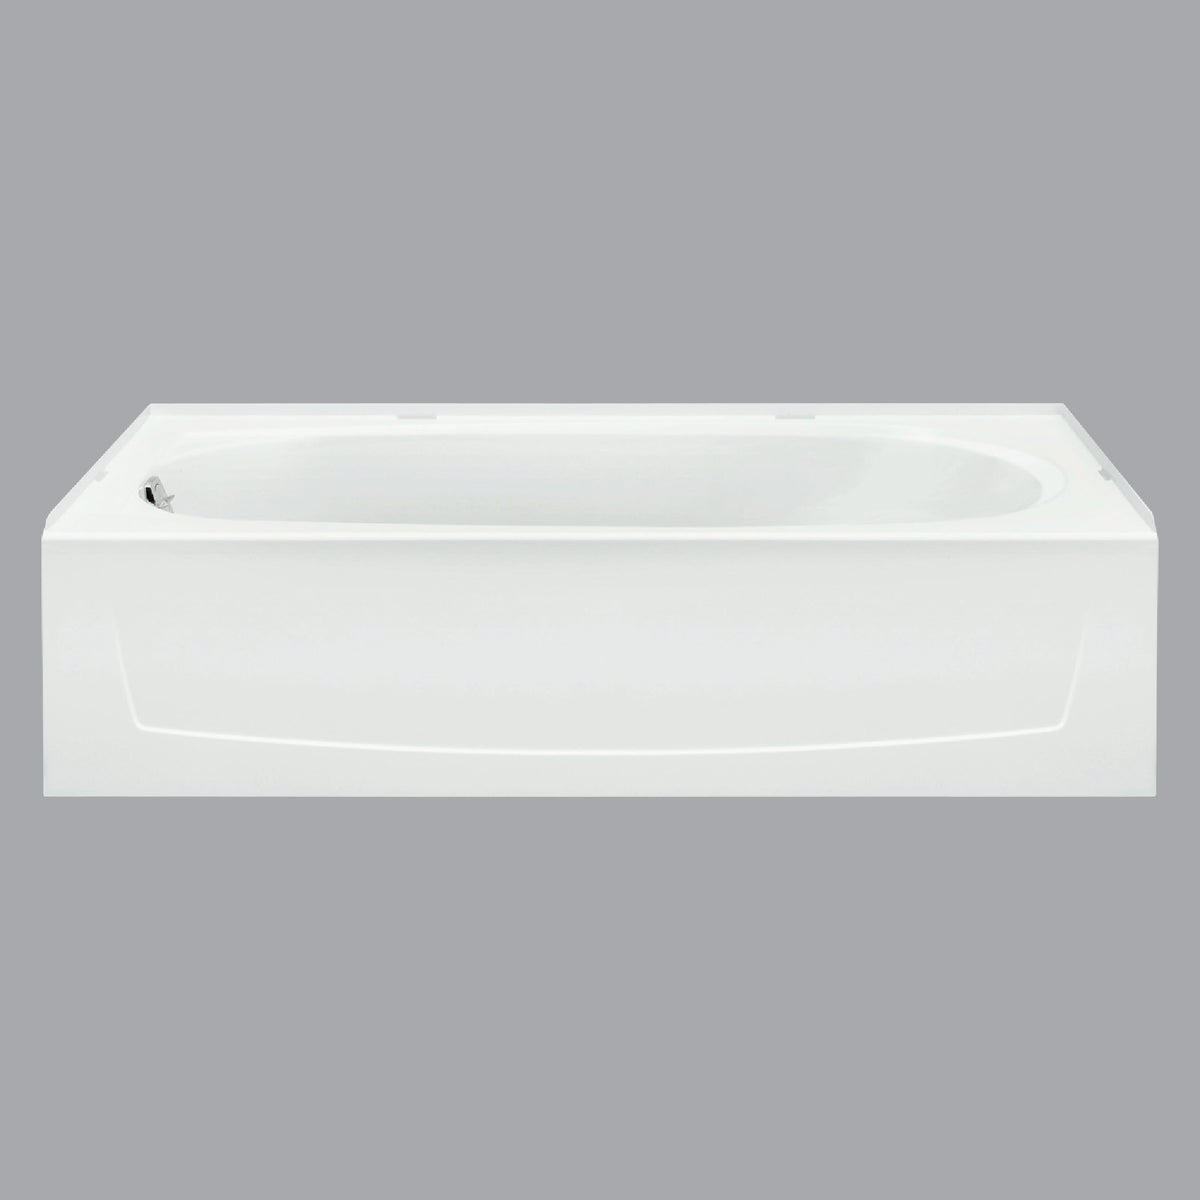 WHITE PERFORMA LH TUB - 71041110-0 by Sterling Pbg/vikrell